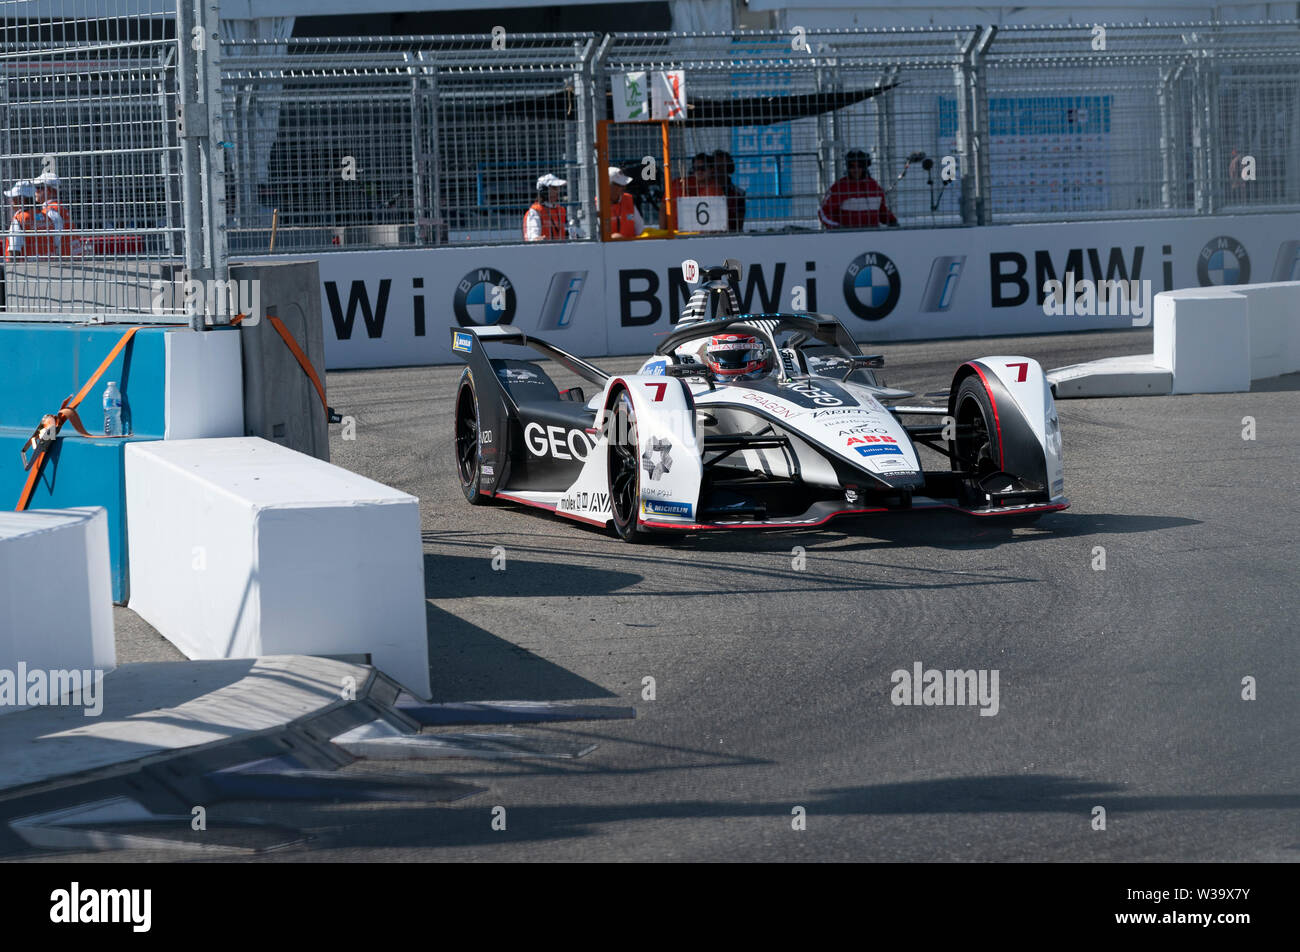 New York, NY - July 13, 2019: Jose Maria Lopez (7) of Geox team drives  electric racing car during New York City E-Prix 2019 Formula E Round 12 at  Red Hook Stock Photo - Alamy